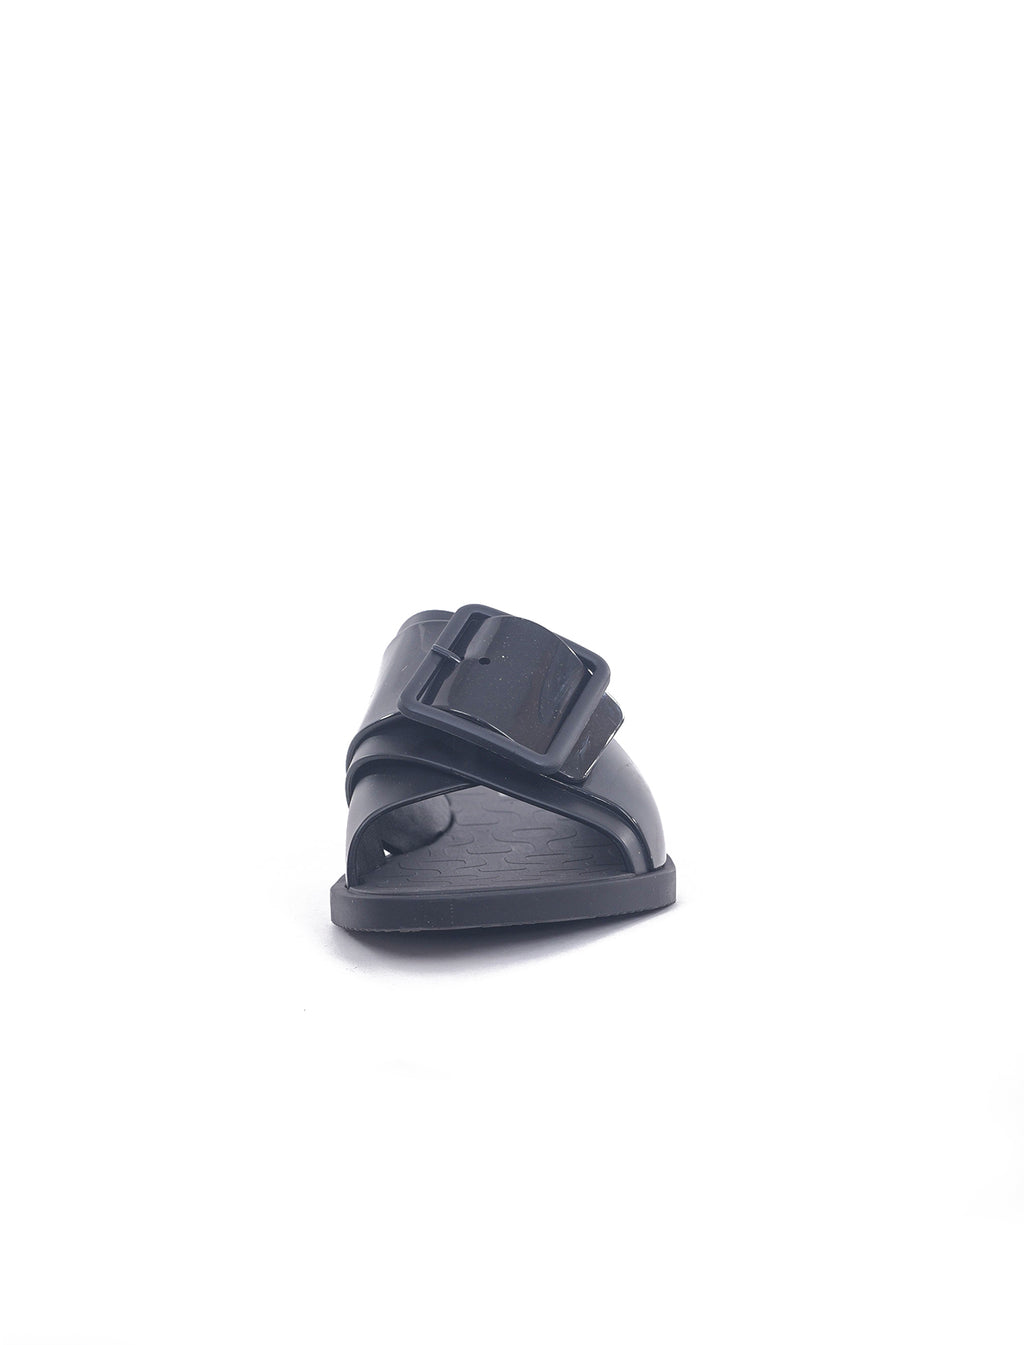 Ipanema Free Slides, Black